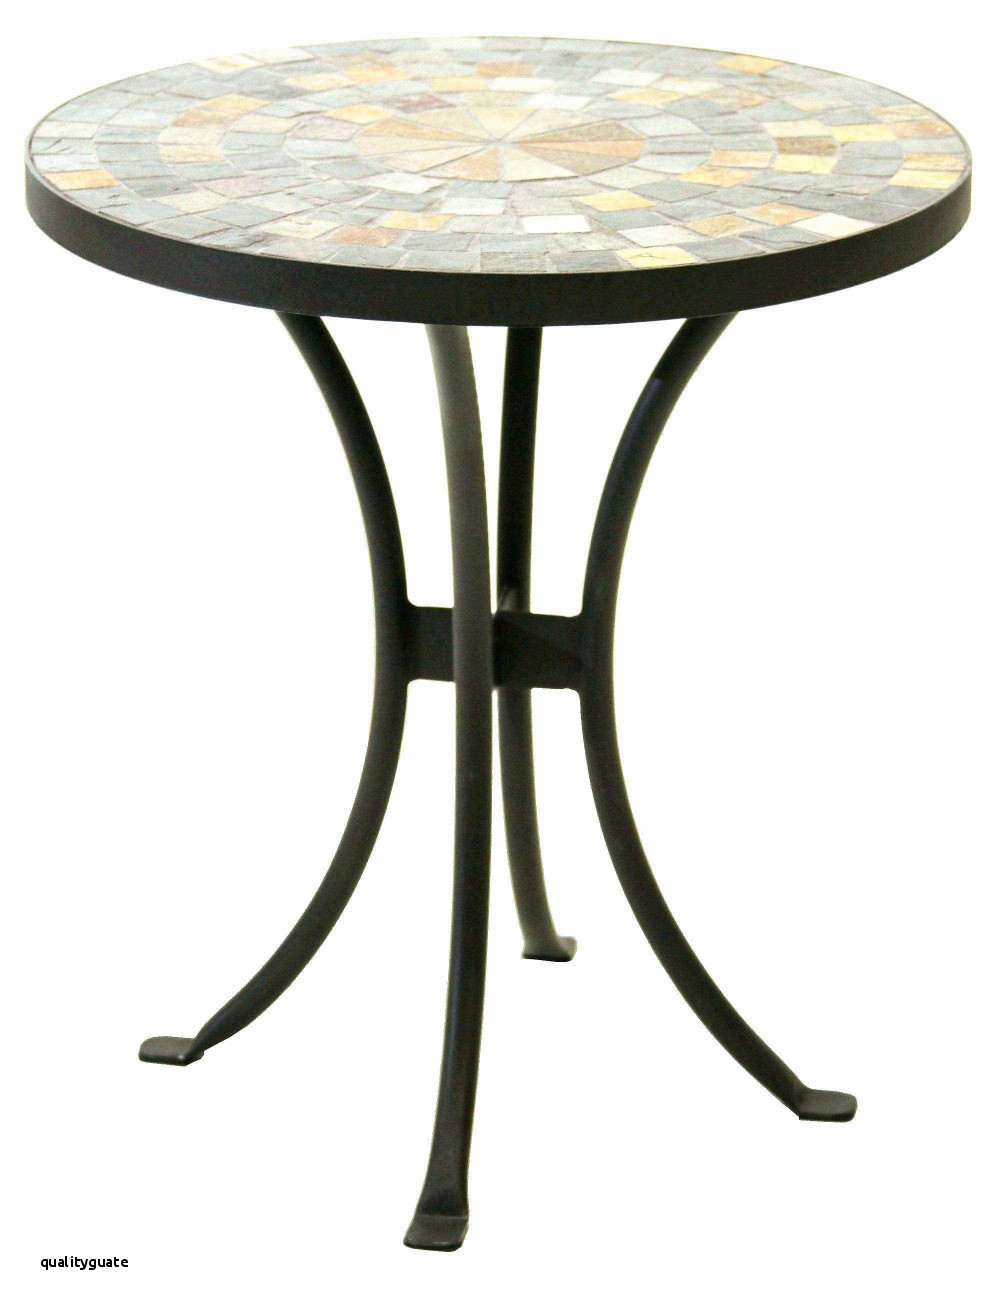 lamp tables contemporary round gold accent table fresh best how decorate end lamps small low outdoor tan leather chair black coffee and sets west elm pillar mirrored entryway with